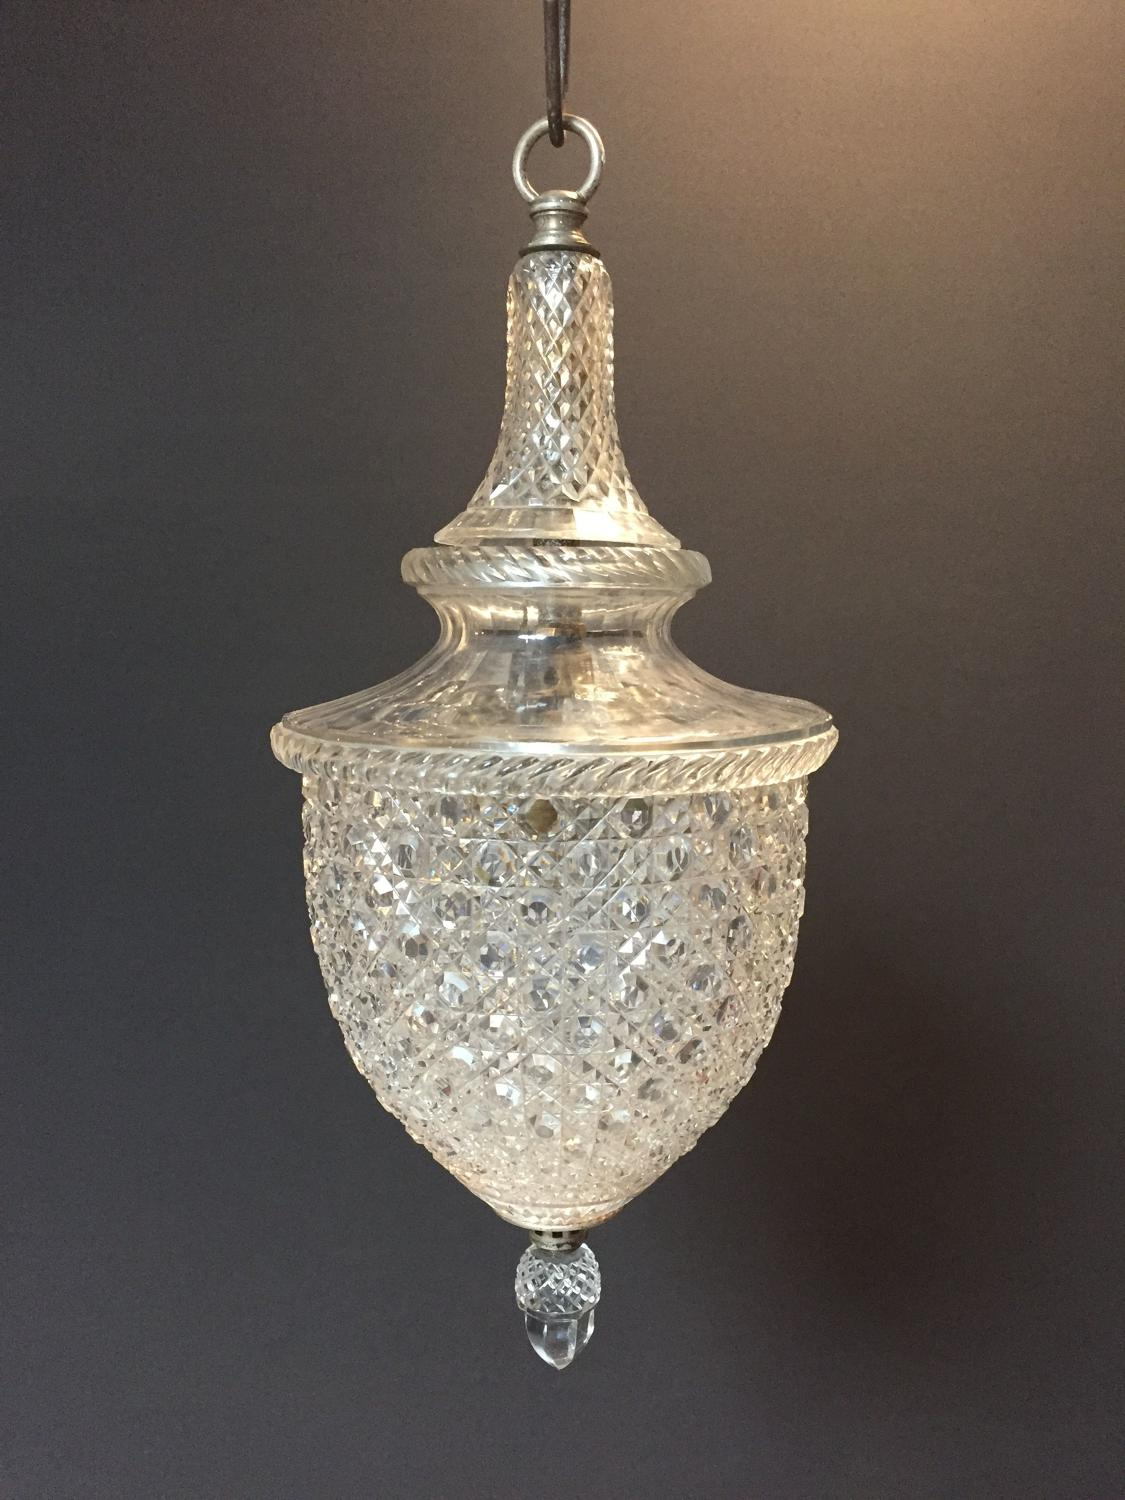 A hobnail cut glass hanging lantern